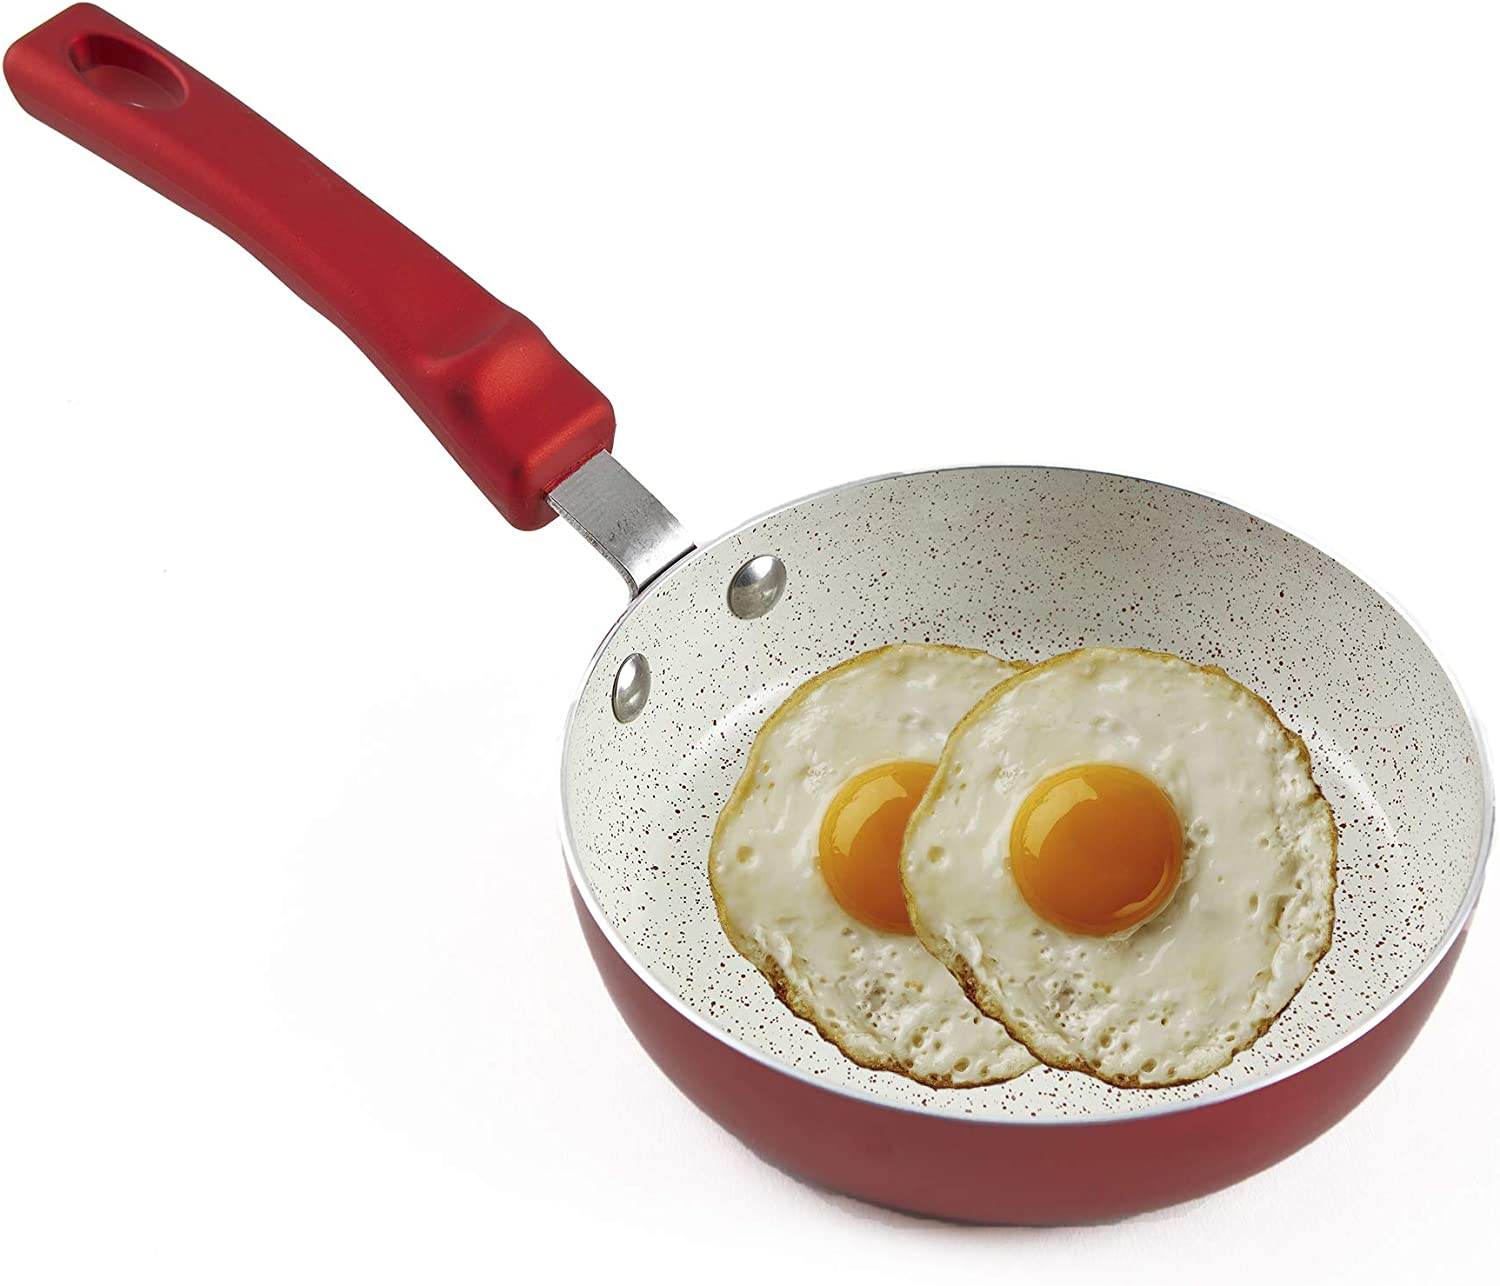 IMUSA USA IMU-25092 8 Nonstick Ruby Red Fry Pan with Soft Touch Handle